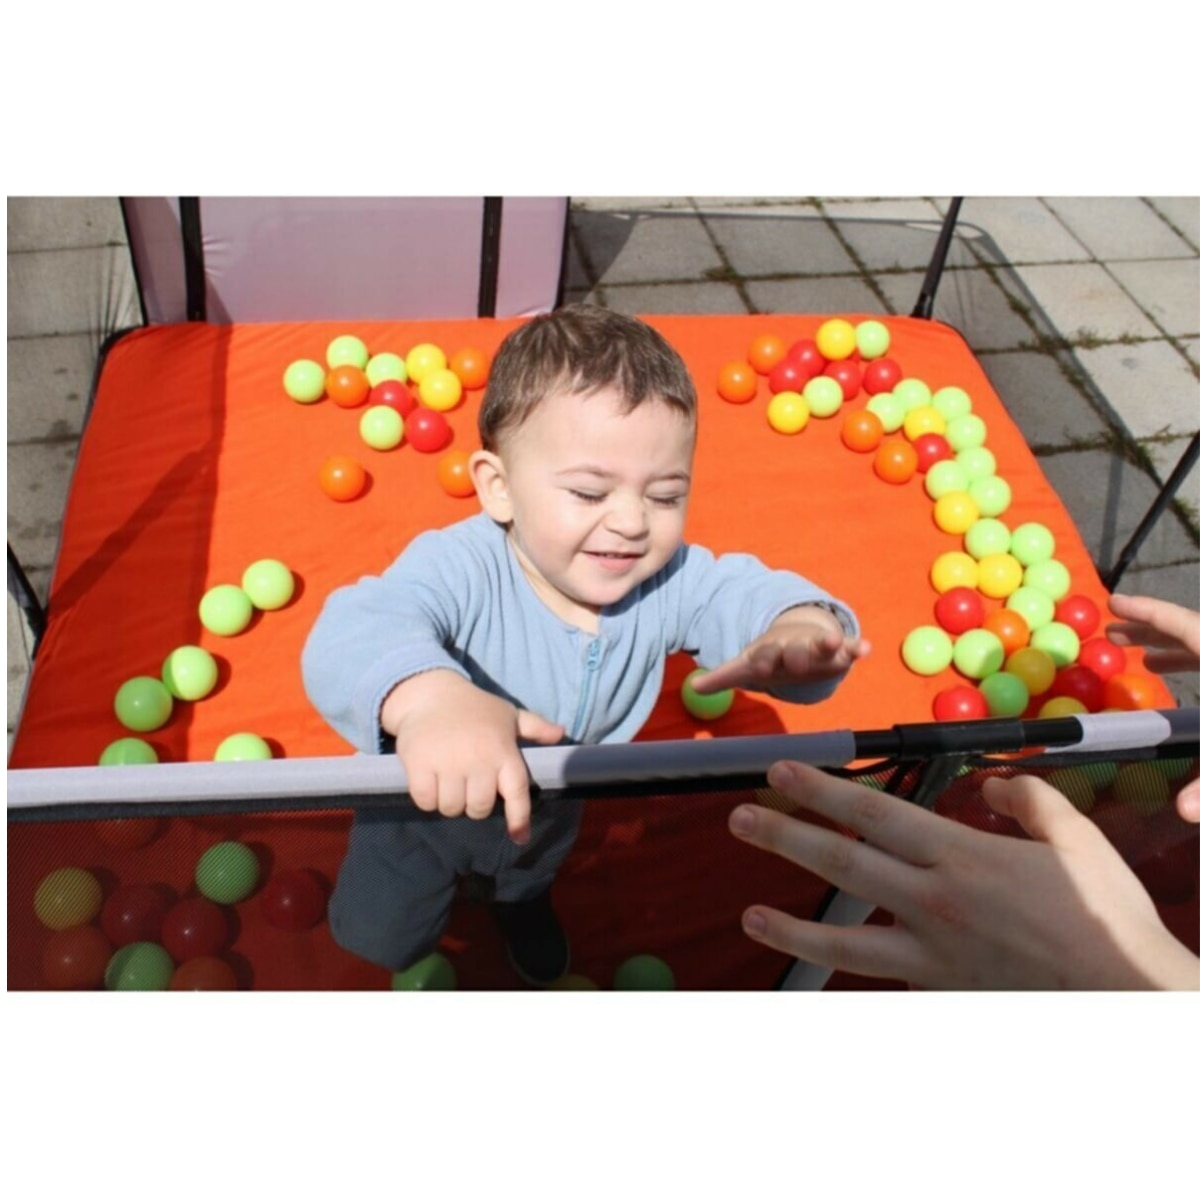 TurQuality Portable Baby Playpens Playing Zone Toddler Gaming Area 6 months ~ 6 Years Old Kids Soft Play Indoor Playground Pit safety Fence Yard  Baby Toys Pool Boys Girls Unisex Parents Mother Mommy Free Dropshinping enlarge